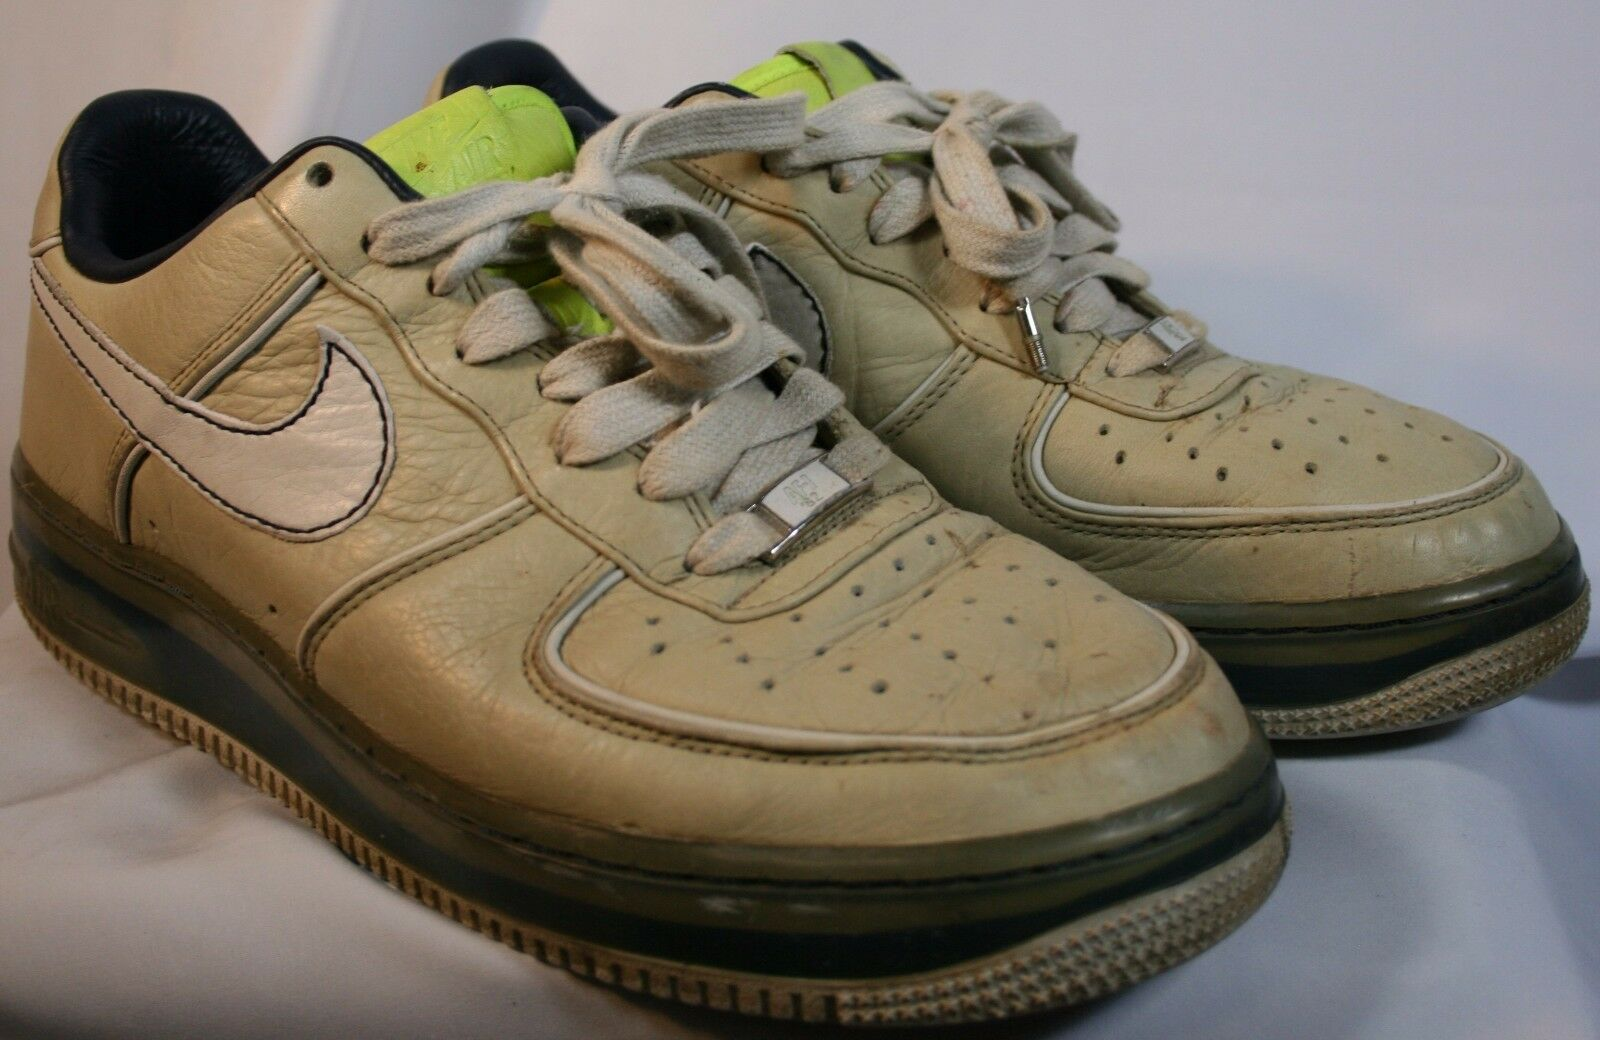 Nike Mens Shoes Af-1 82 Size 10 Good Condition Look at the Pictues